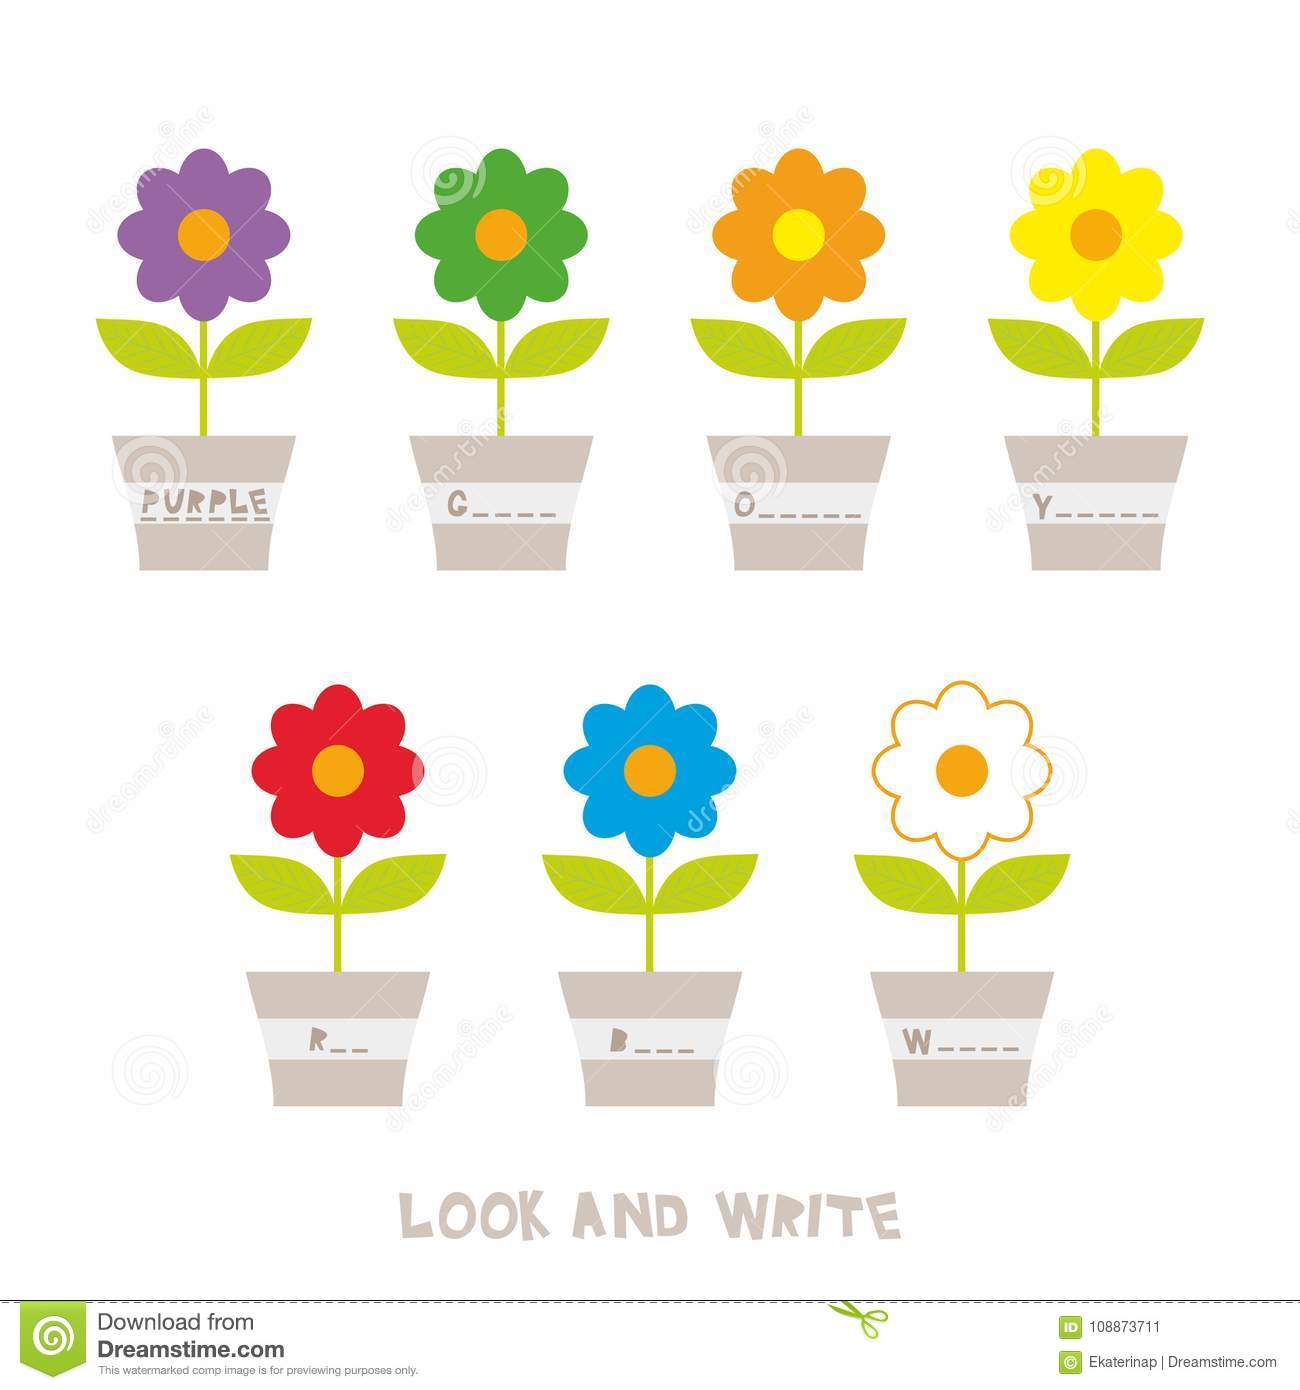 Look And Write Flowers In Pots Kids Words Learning Game